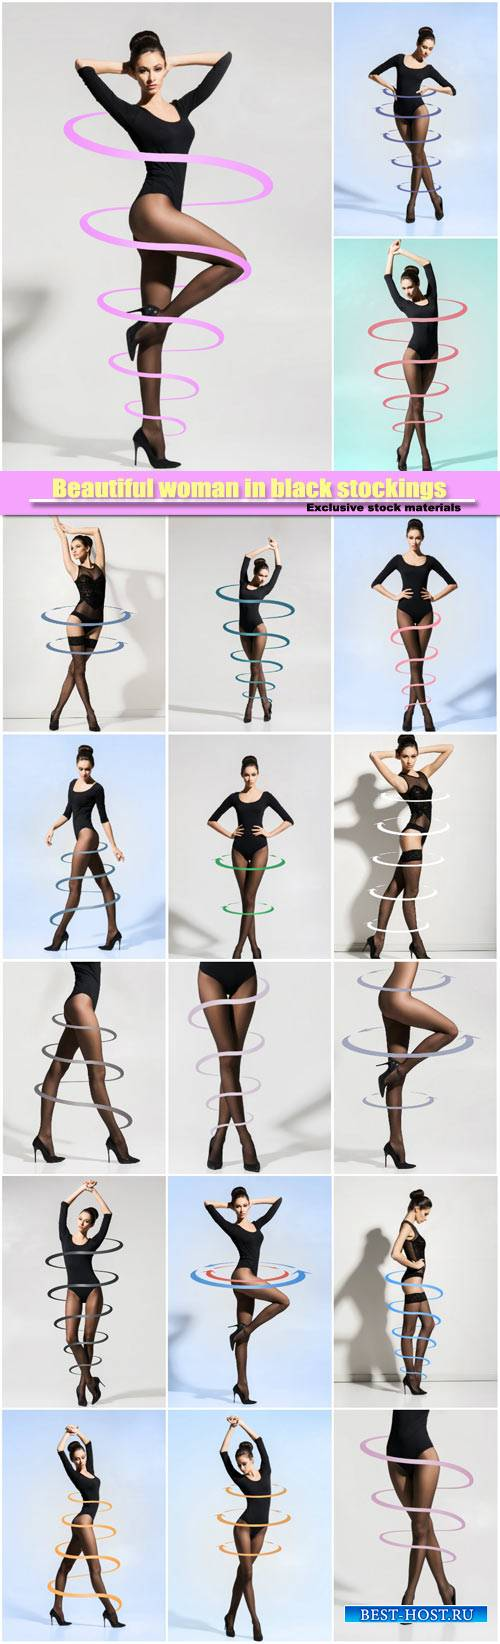 Beautiful woman in black stockings with arrows, fitness, sport and diet concept